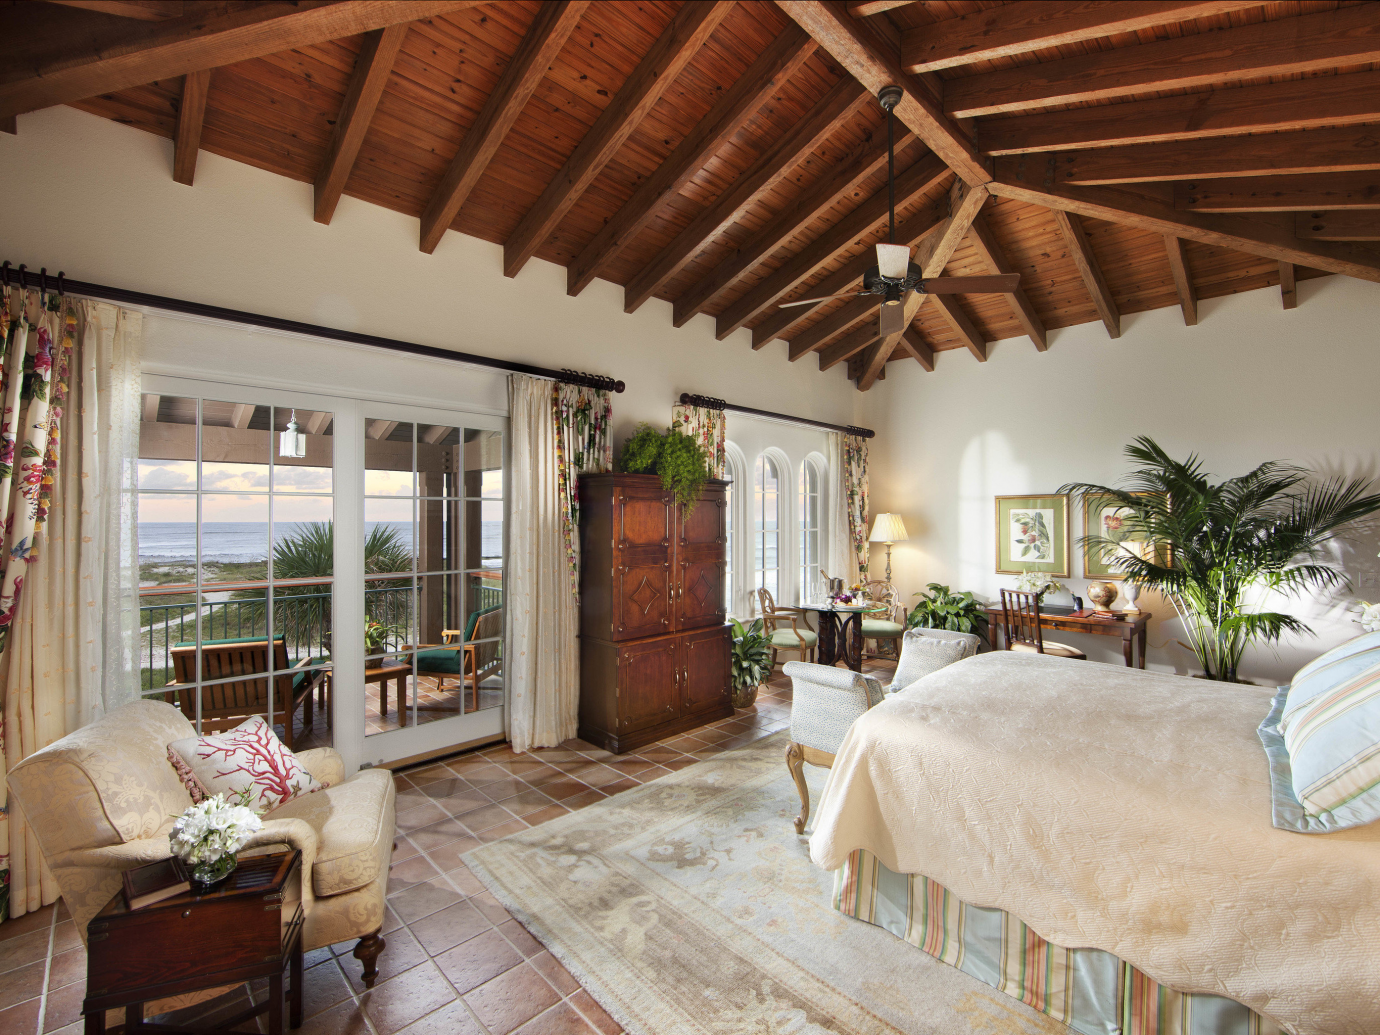 Charming Southern style suite with a view of the water and a balcony at The Cloister at Sea Island